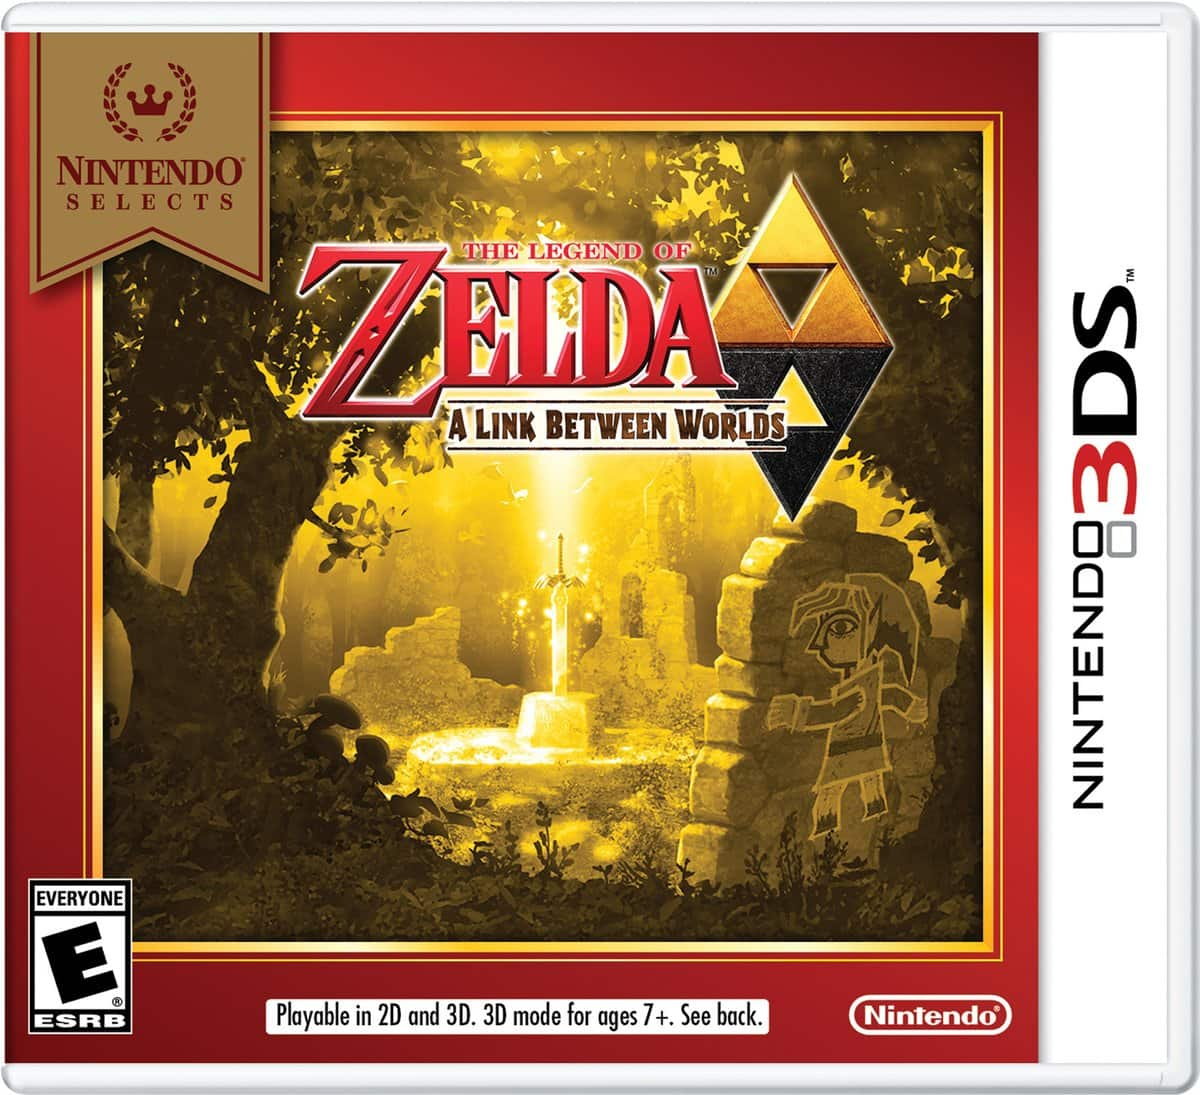 Best Buy GCU Members: 3DS Nintendo Selects: Super Mario 3D Land, The Legend of Zelda: A Link Between Worlds, or Ultimate NES Remix $15.99 each. (MSRP $19.99). Store pick up only.